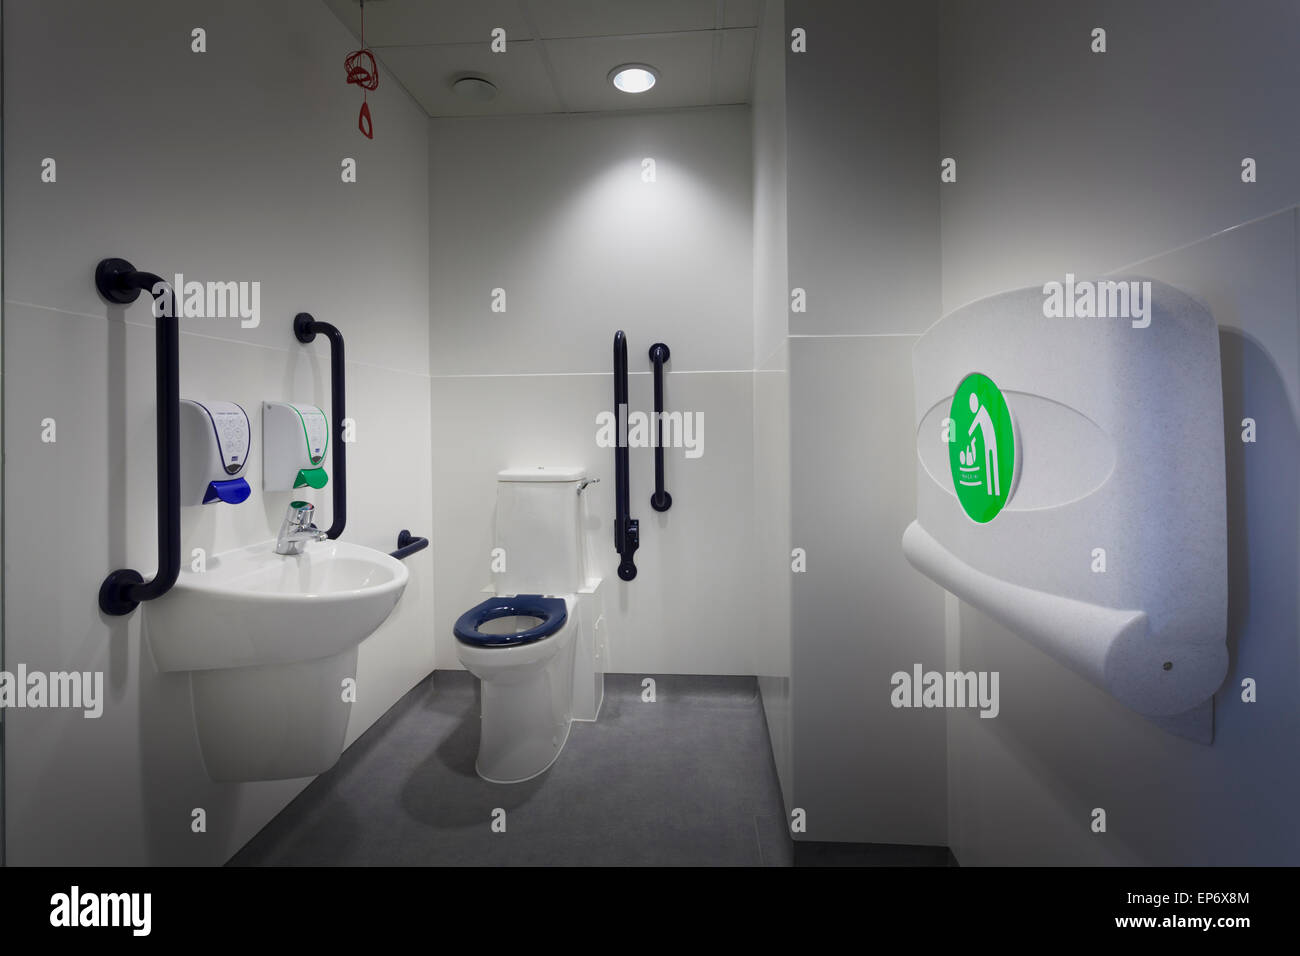 disabled toilet stock photos u0026 disabled toilet stock images alamy